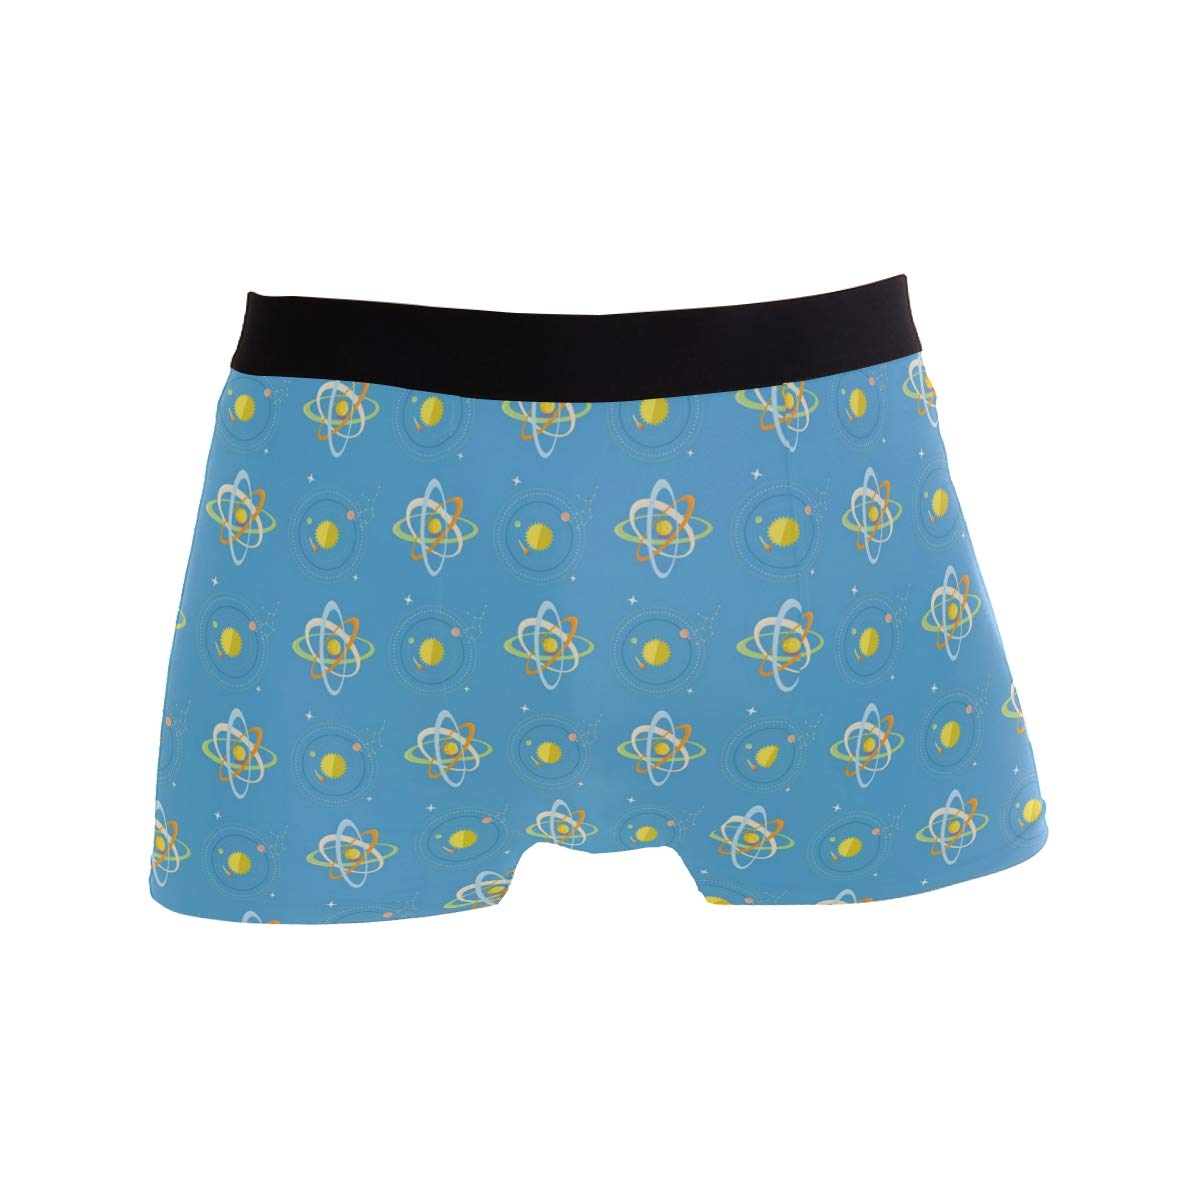 Charlley Lee Mens Soft Breathable Bright Solar System and Planets Rotating Blue Underwear Boxer Briefs